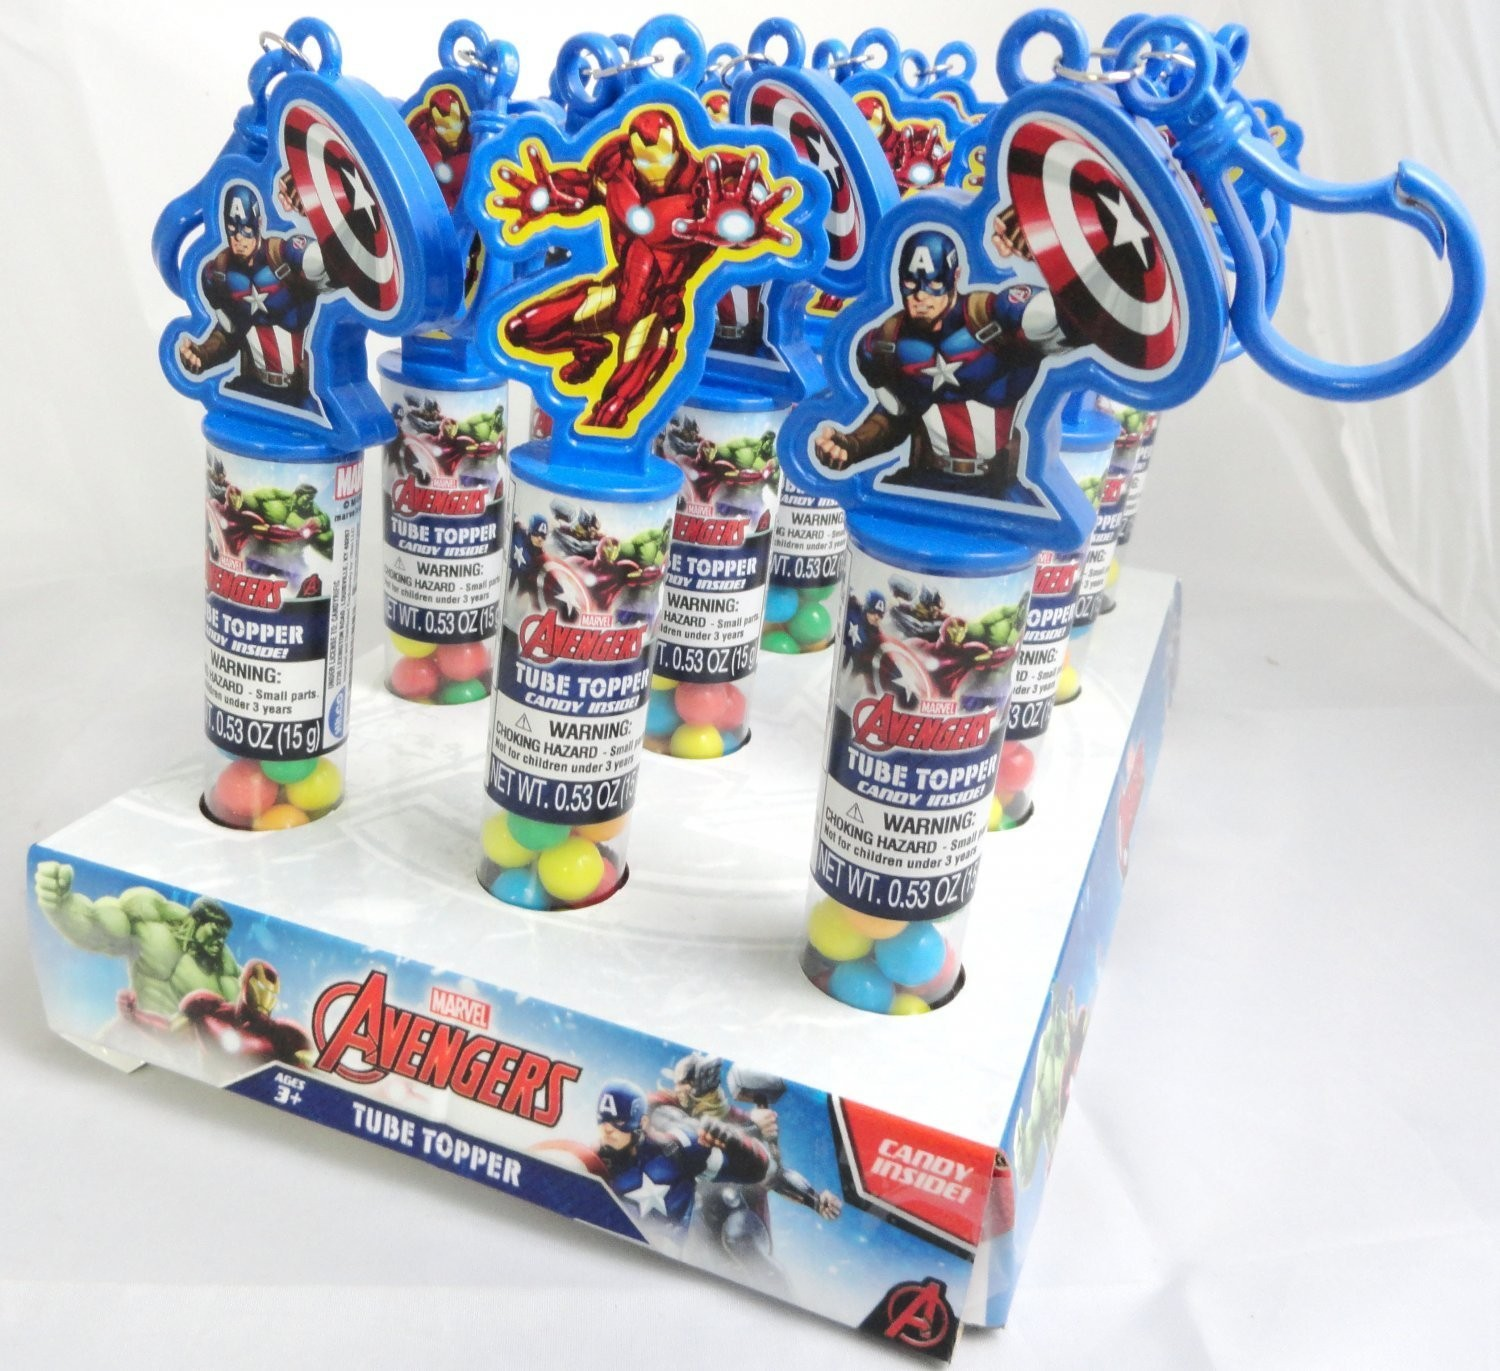 Marvel Avengers Marvel Avengers Collectible Tube Topper with Key Chain